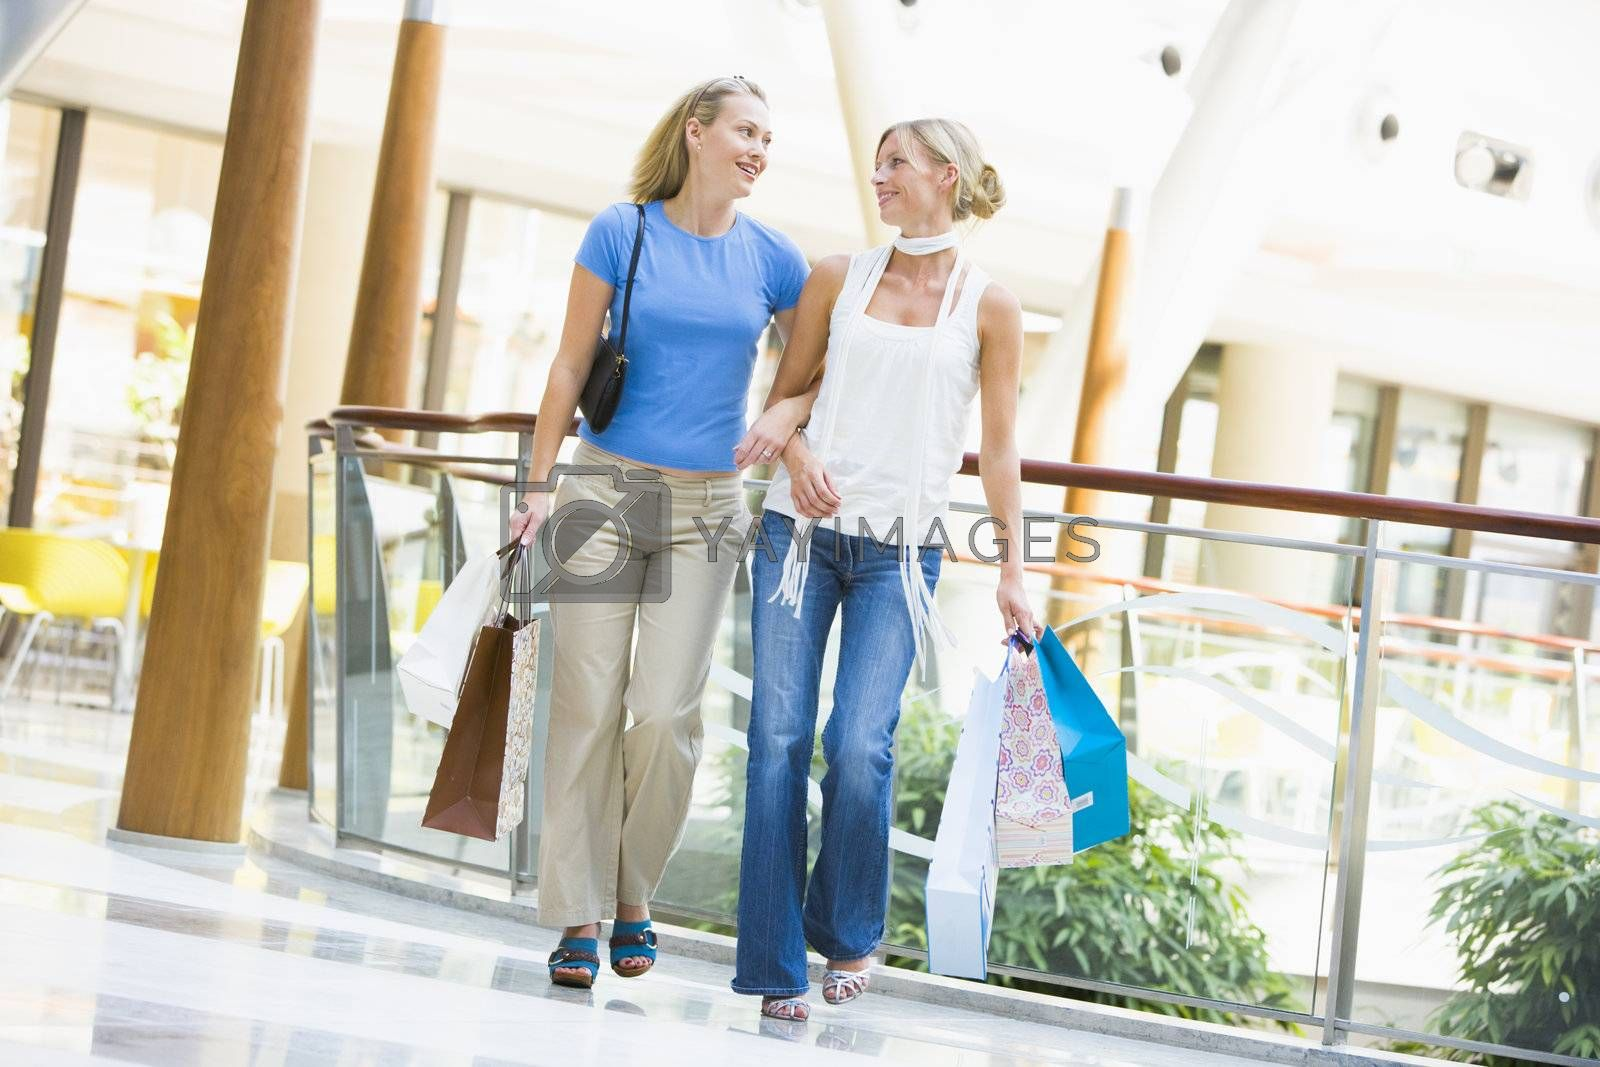 Friends shopping together carrying bags